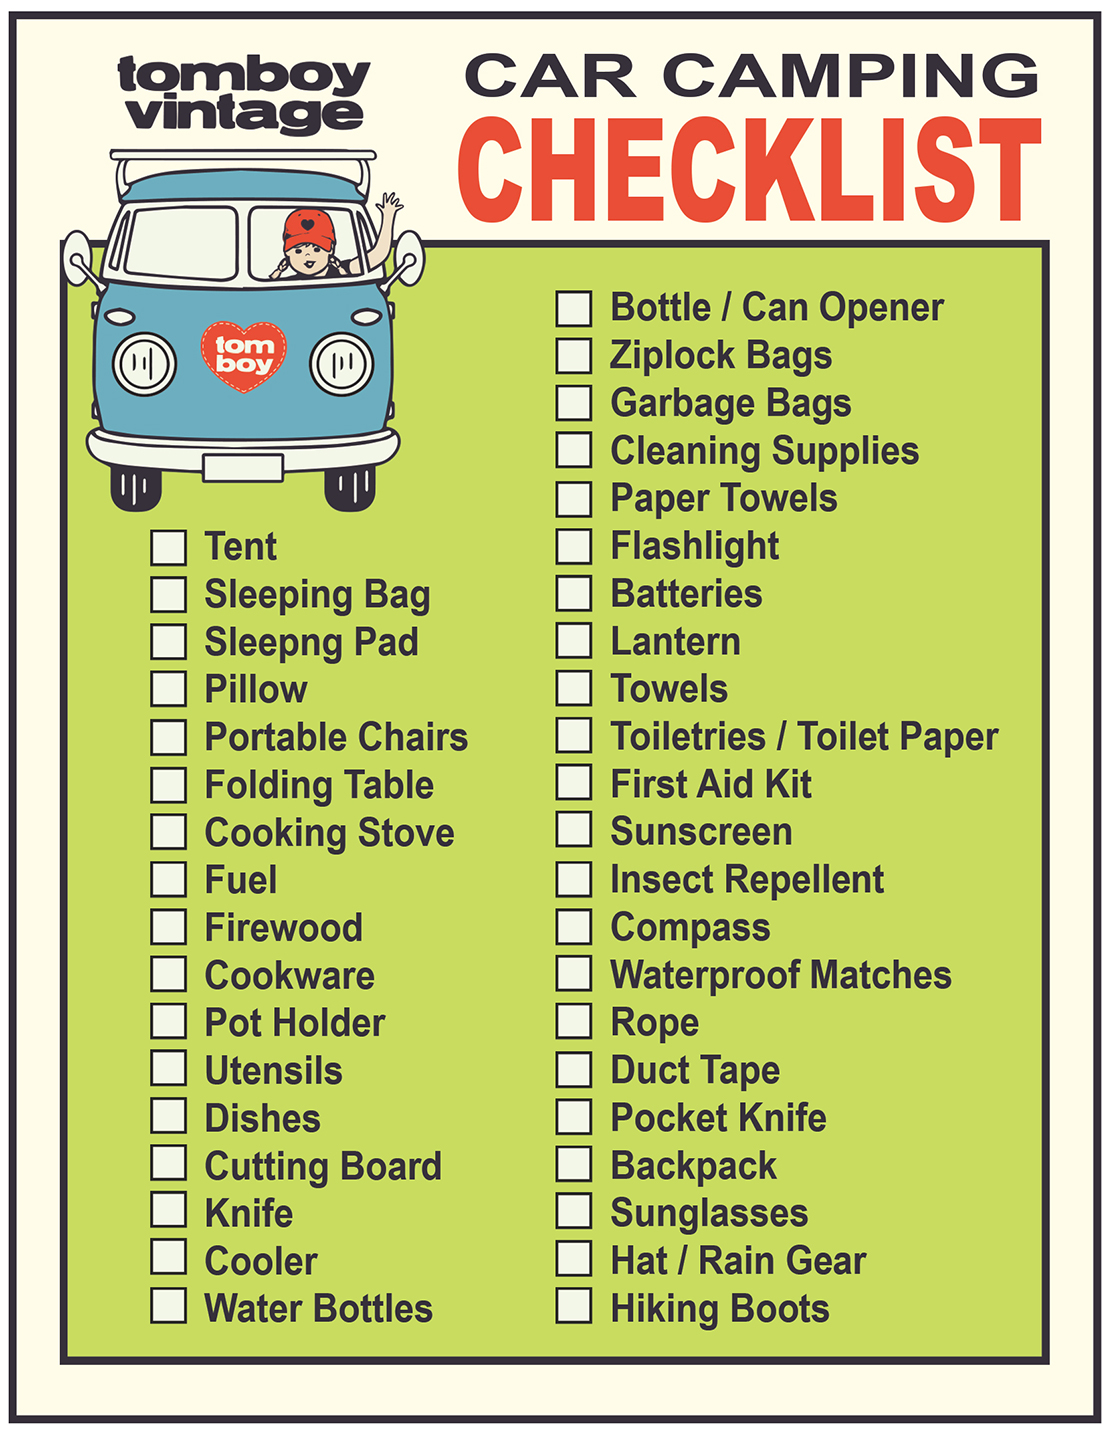 9 Helpful Car Camping Checklist